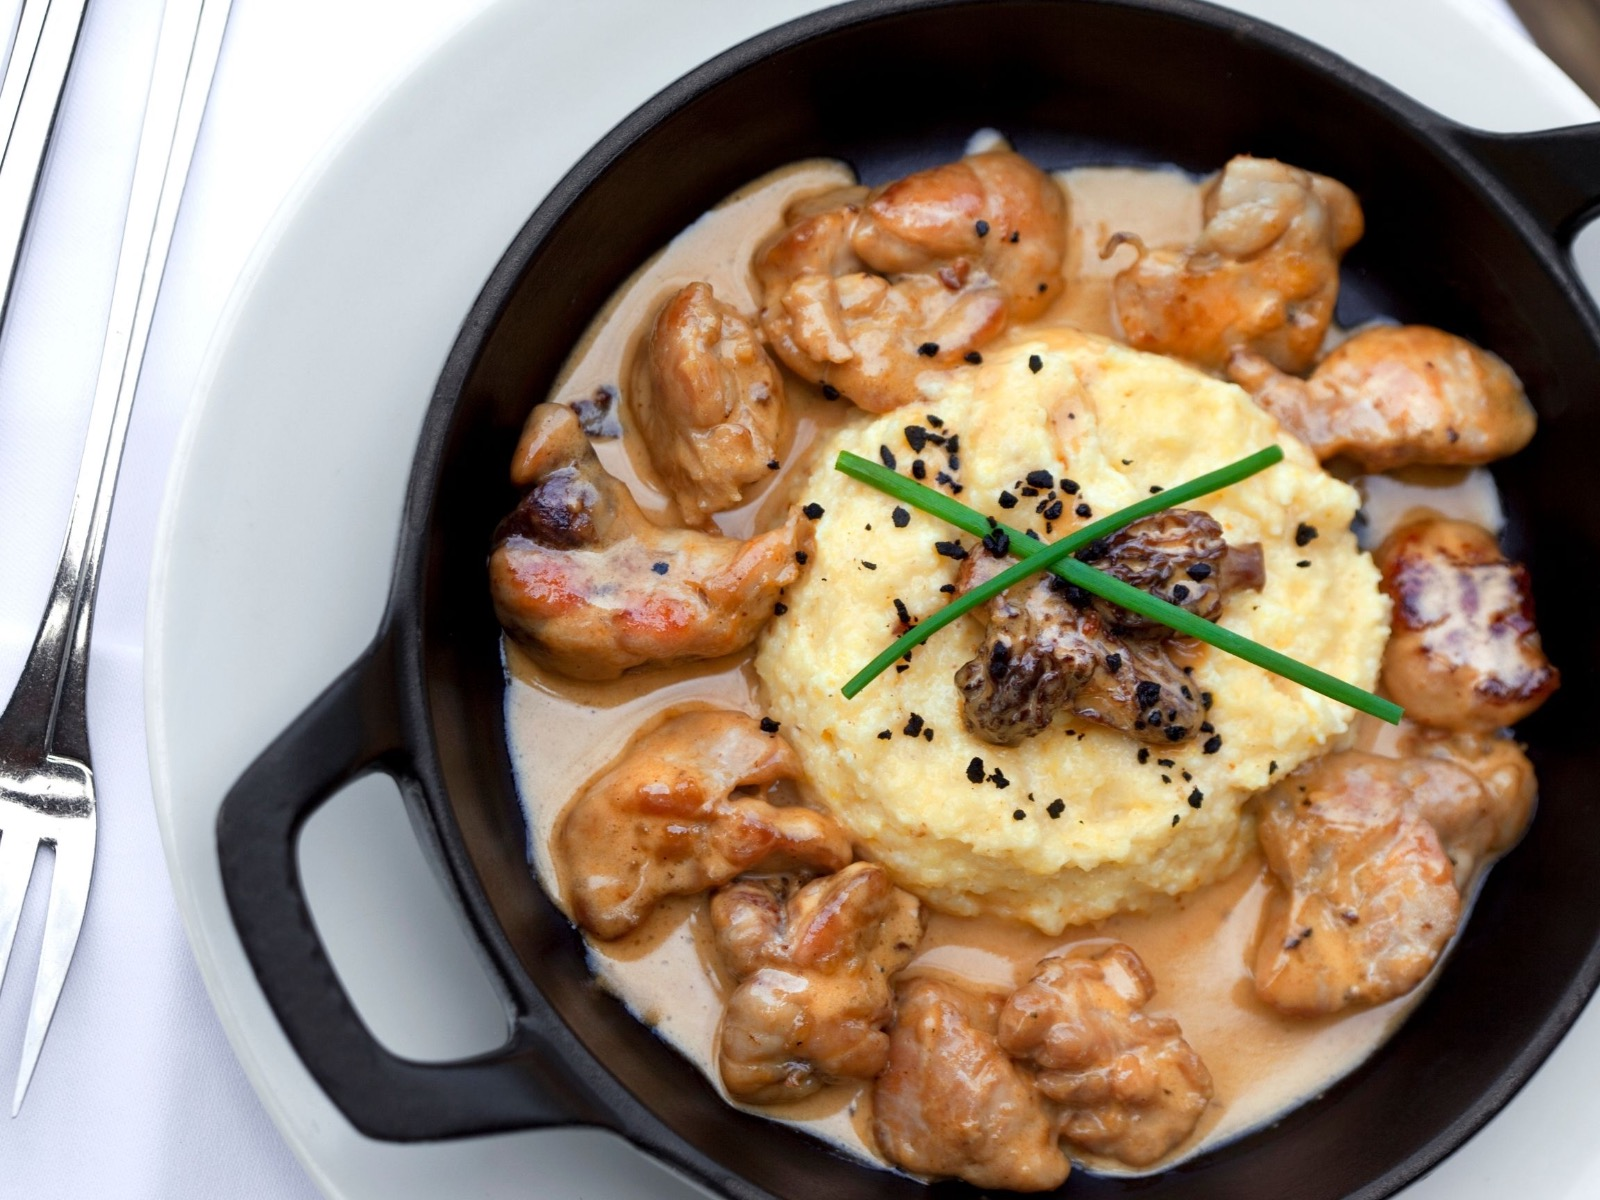 Sweetbreads How To Prepare This Nutritious Delicacy - Beck & Bulow